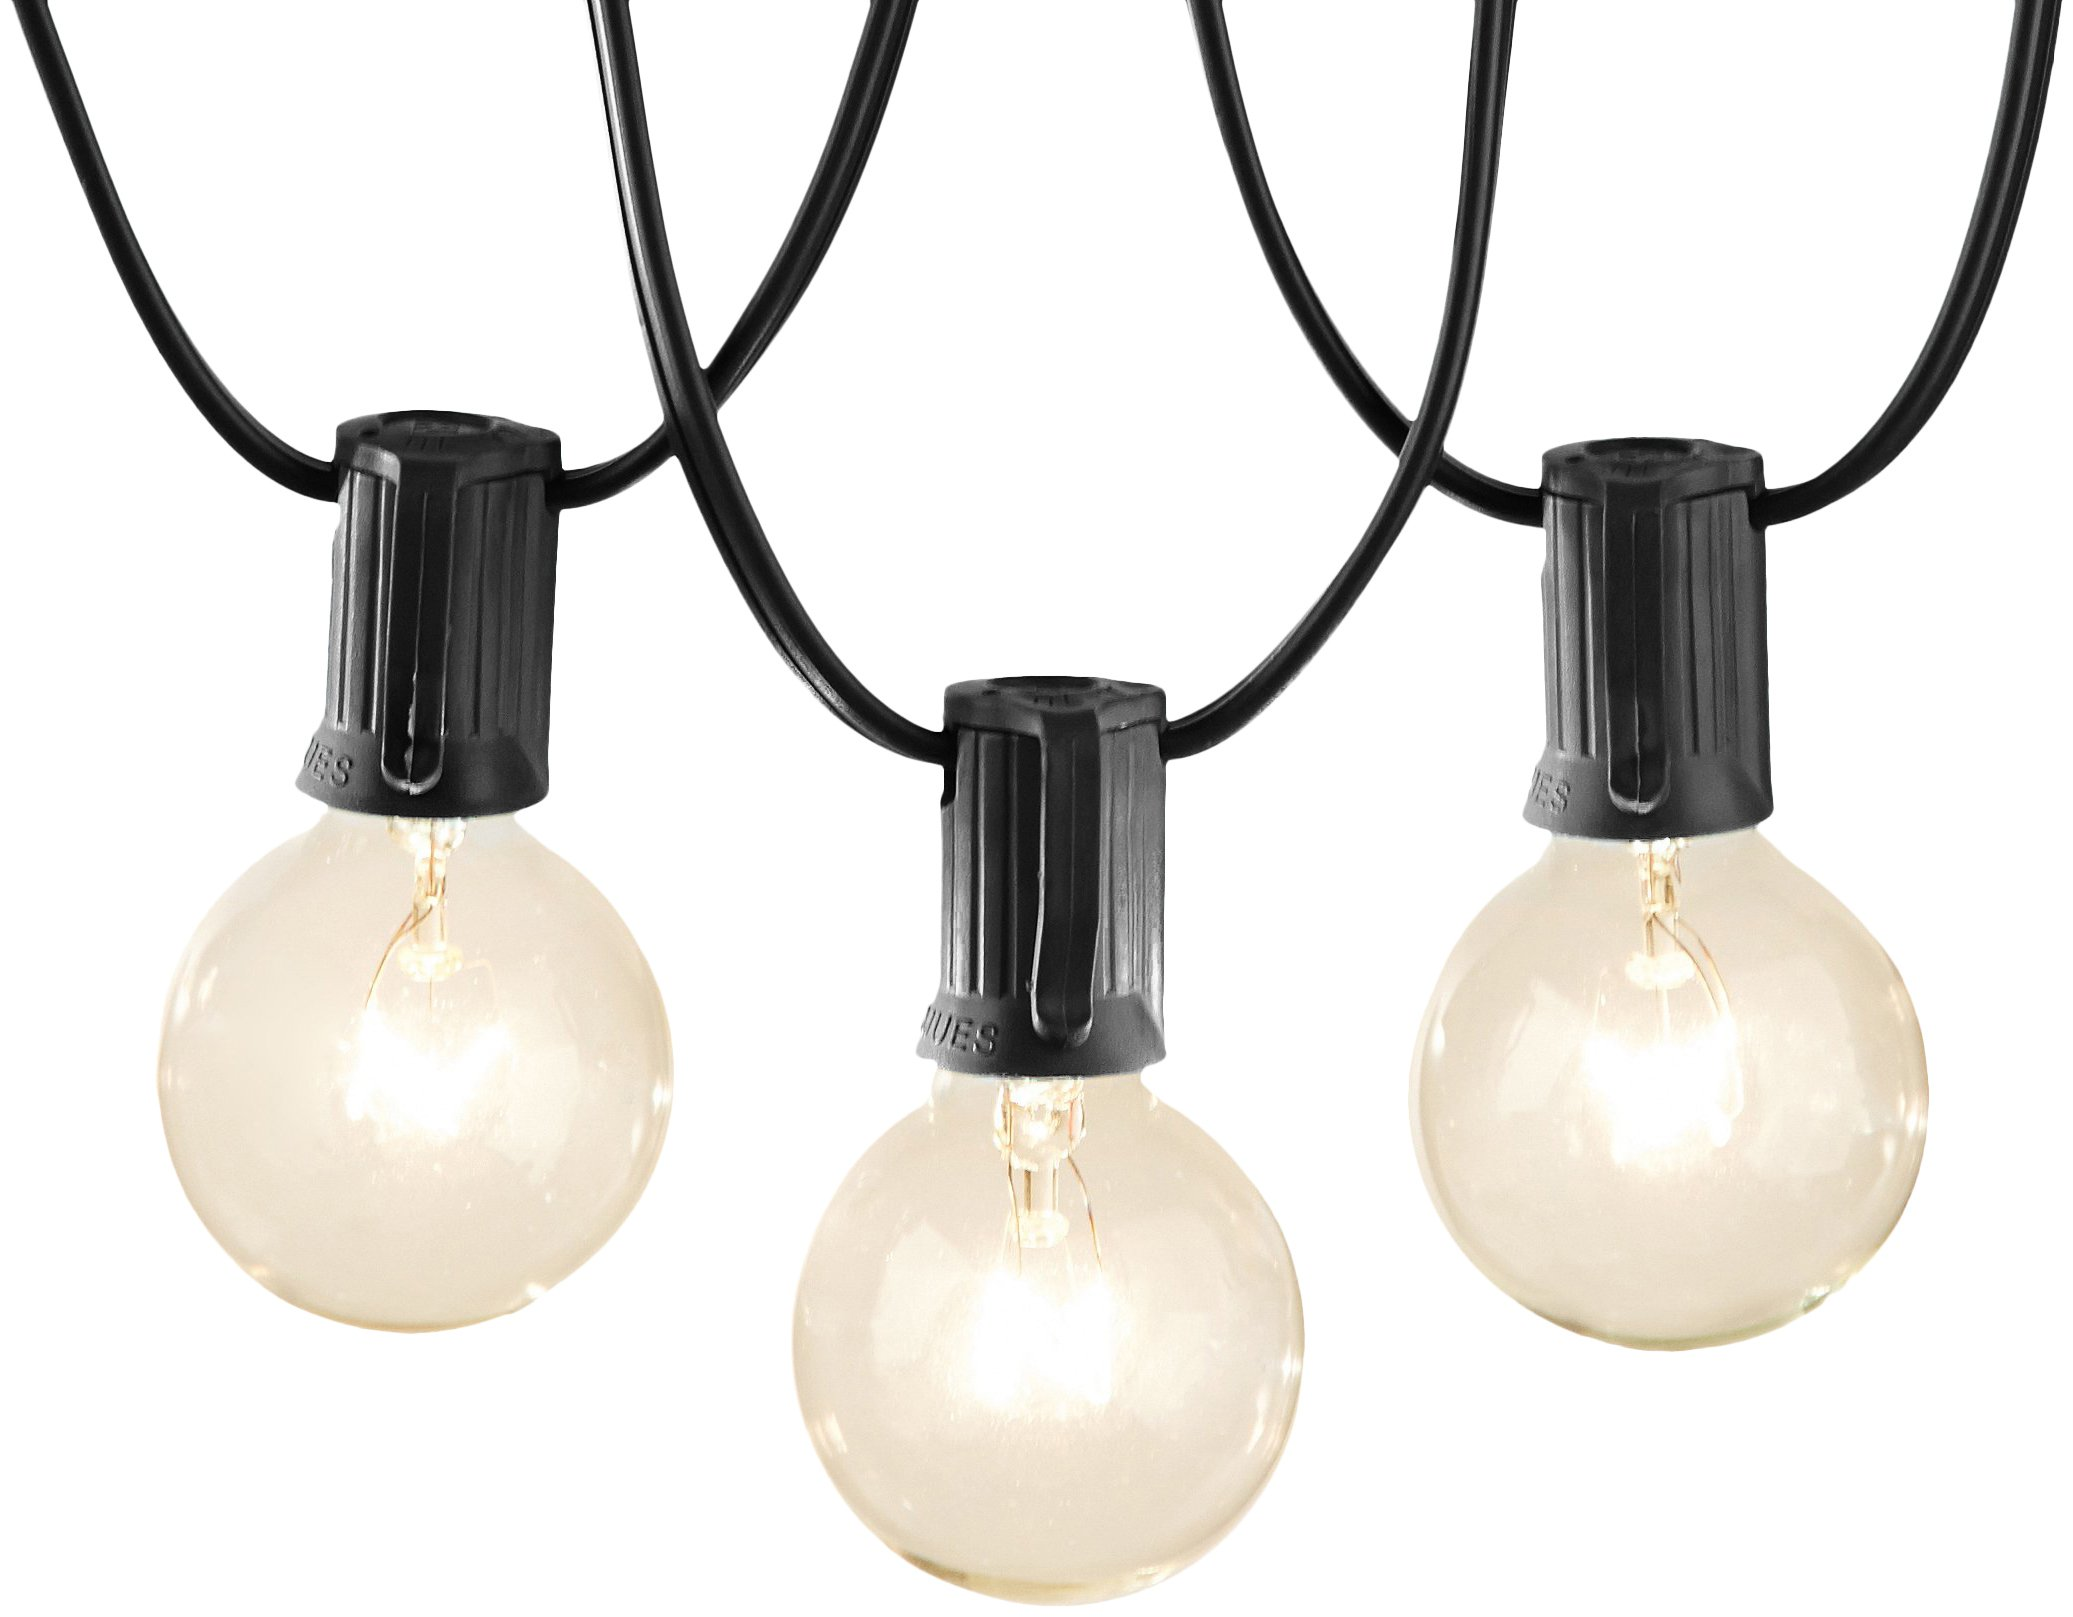 AmazonBasics Outdoor Patio Lights String With 50 Globe Light Bulbs - 50 Foot, Black